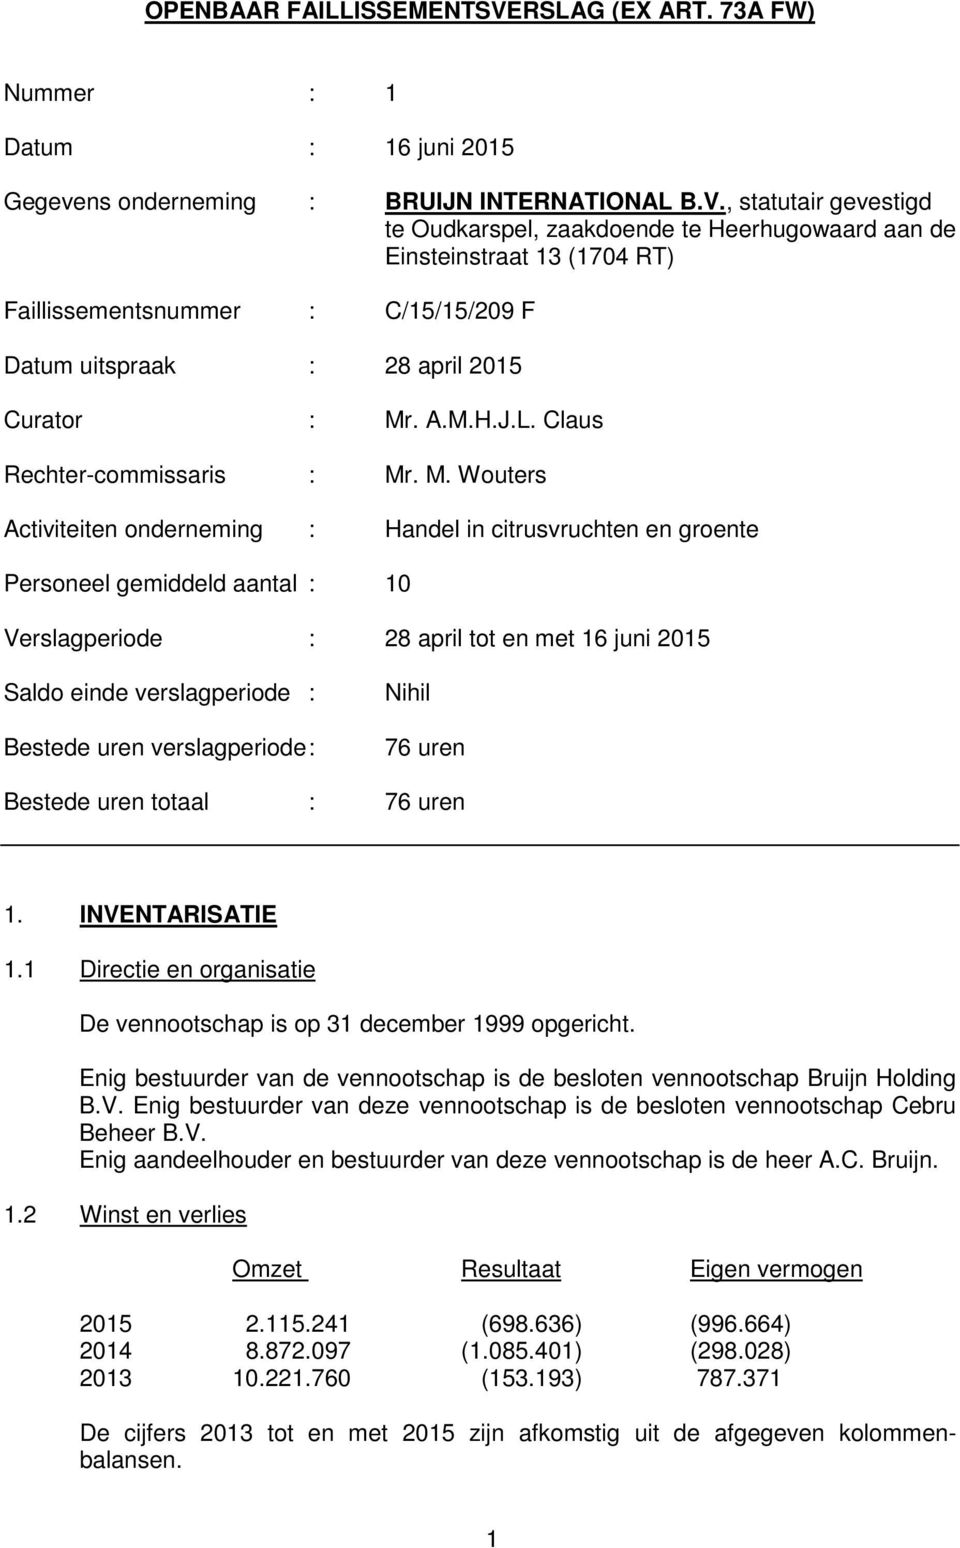 , statutair gevestigd te Oudkarspel, zaakdoende te Heerhugowaard aan de Einsteinstraat 13 (1704 RT) Faillissementsnummer : C/15/15/209 F Datum uitspraak : 28 april 2015 Curator : Mr. A.M.H.J.L.